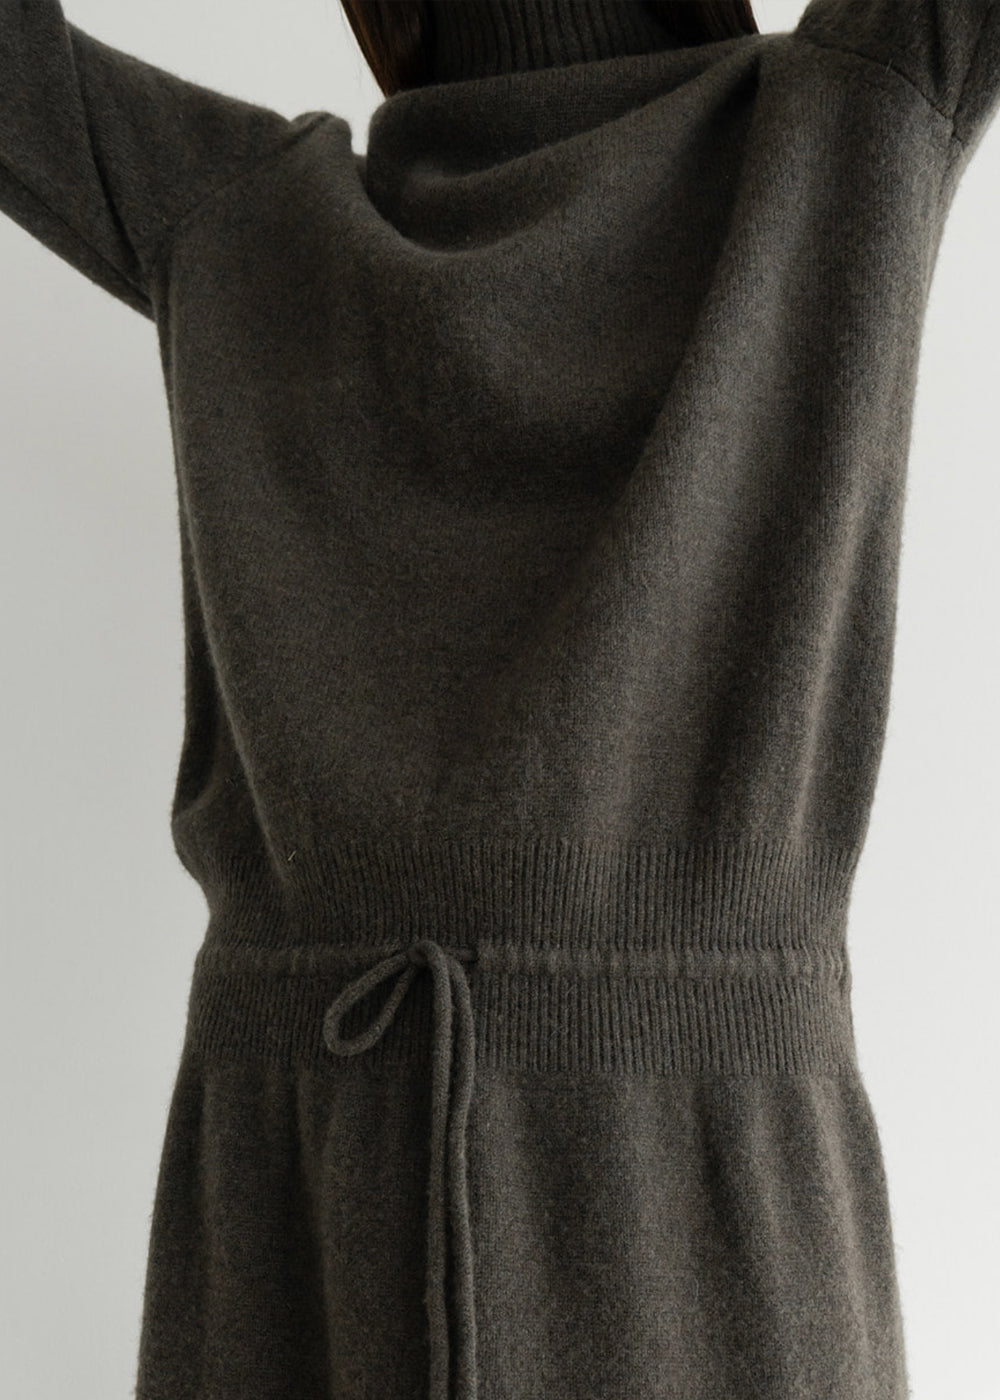 AIRWOOL STRING TURTLENECK DRESS